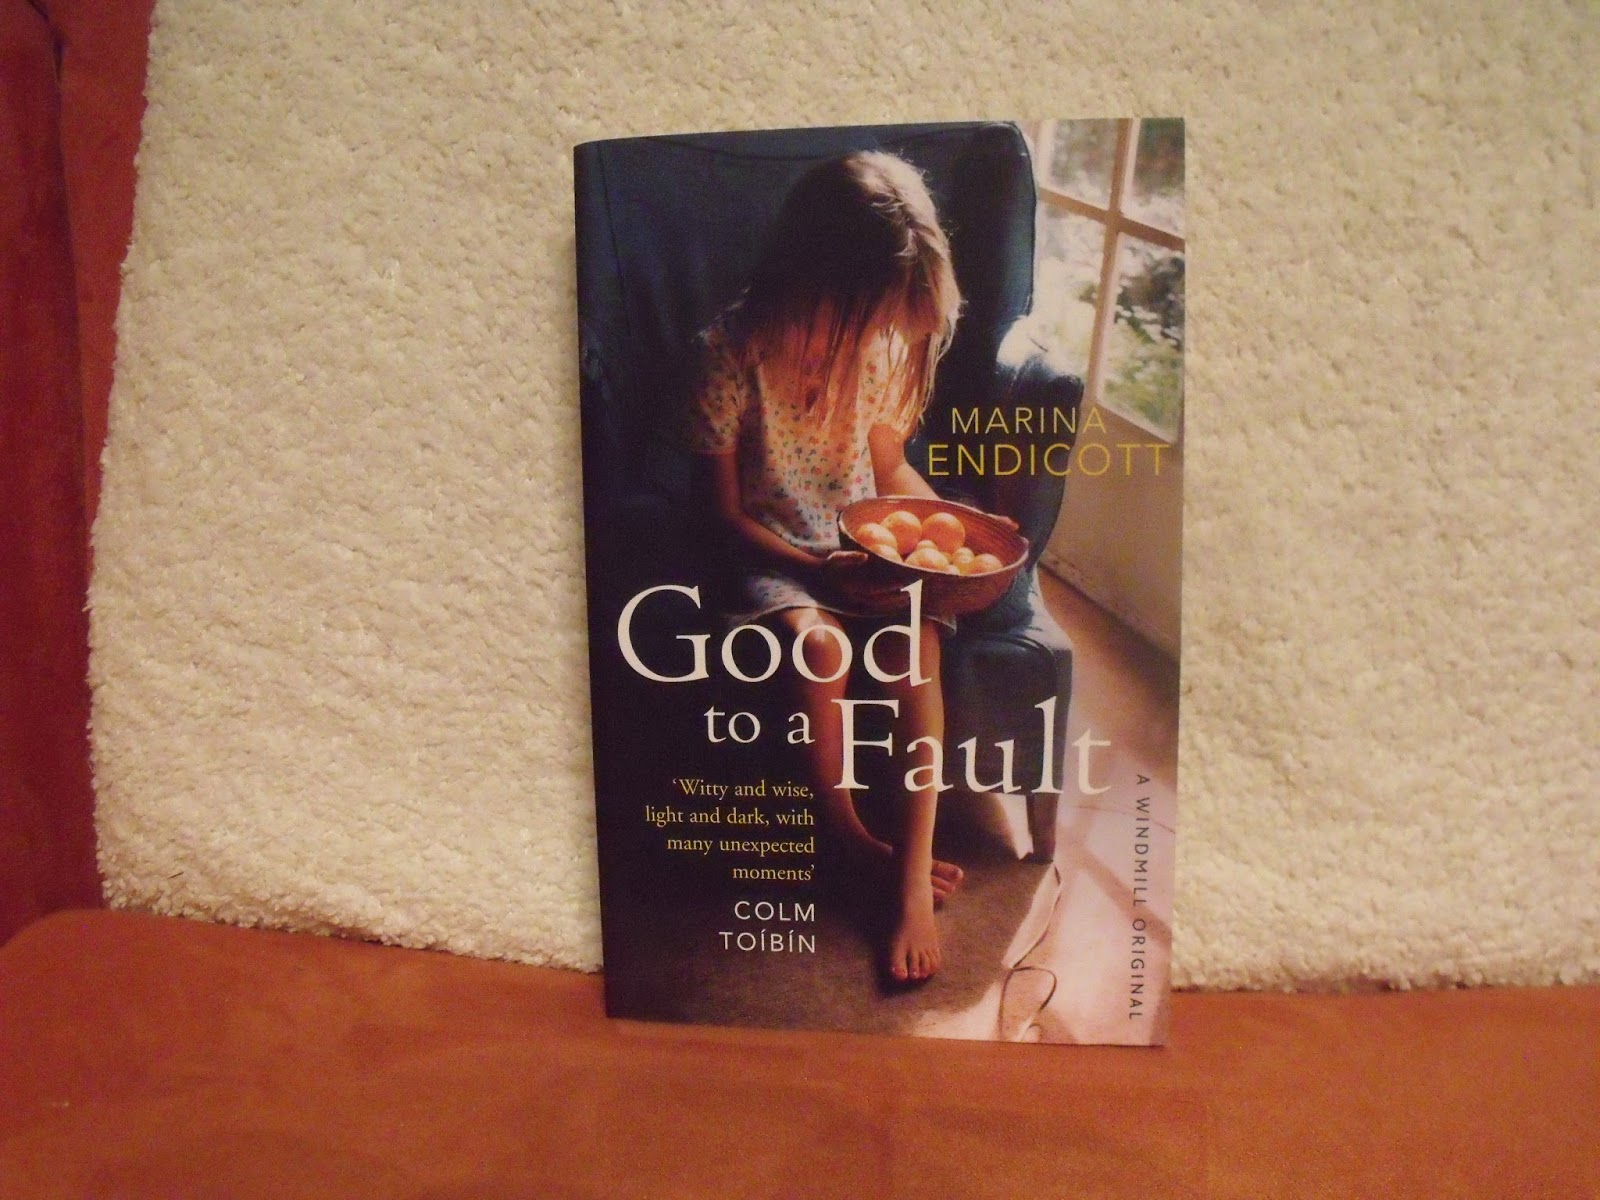 good to a fault by marina endicott essay Details about good to a fault by marina endicott (paperback, 2009) be the first to write a review good to a fault by marina endicott (paperback, 2009) email to friends share on facebook - opens in a new window or tab share on twitter - opens in a new window or tab share on pinterest - opens in a new window or tab.